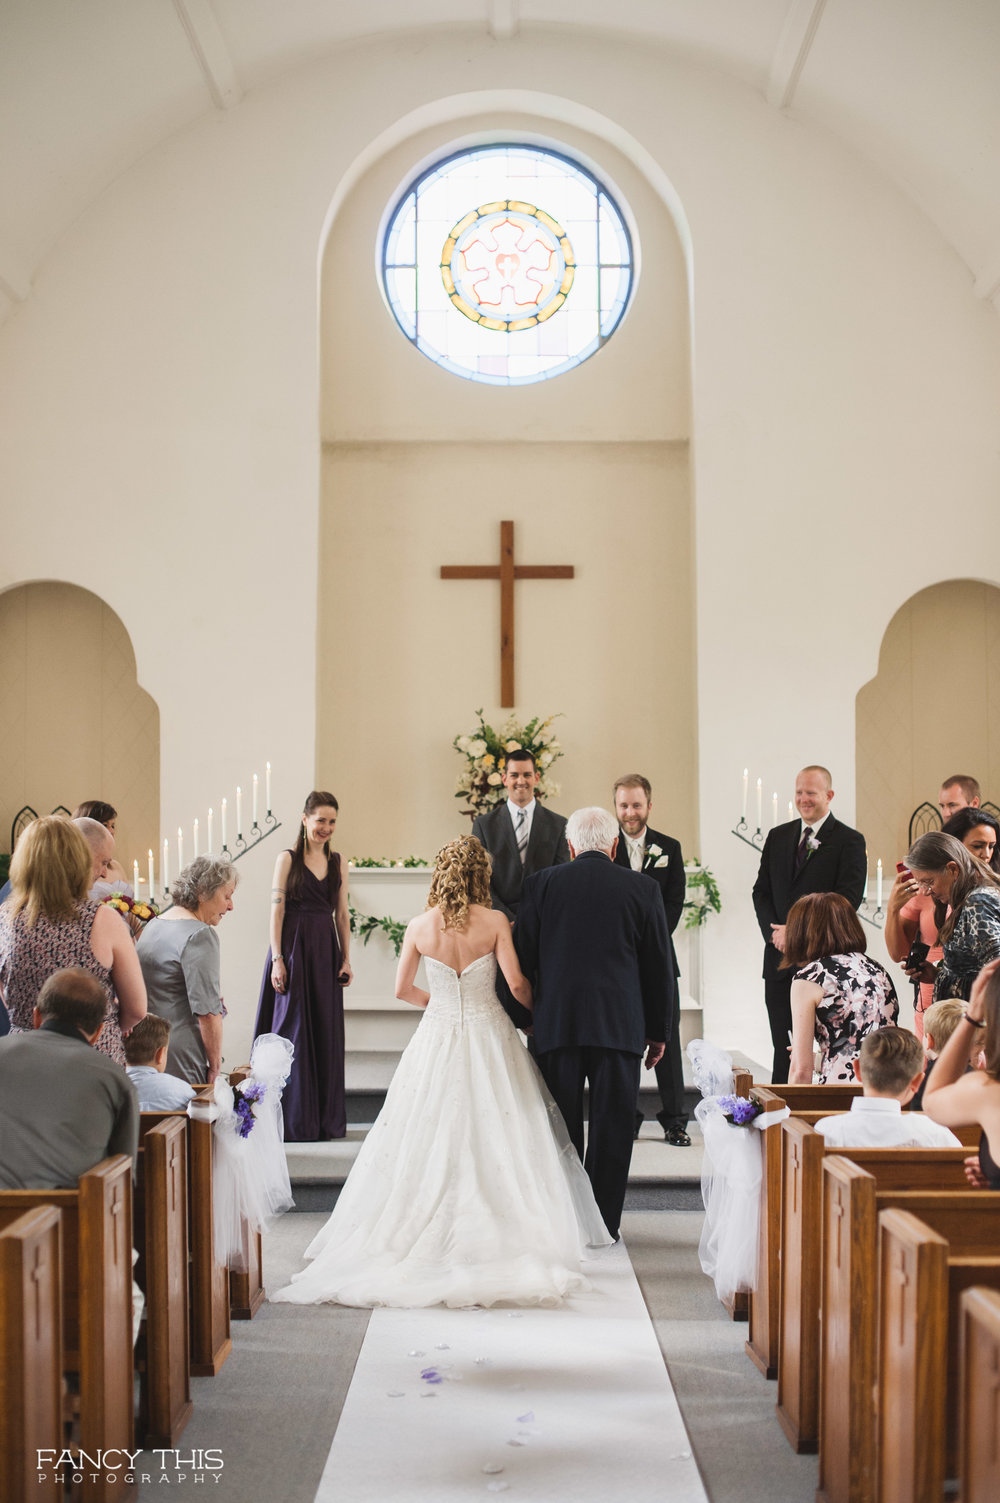 courtneyjasonwedding_socialmediaready093.jpg